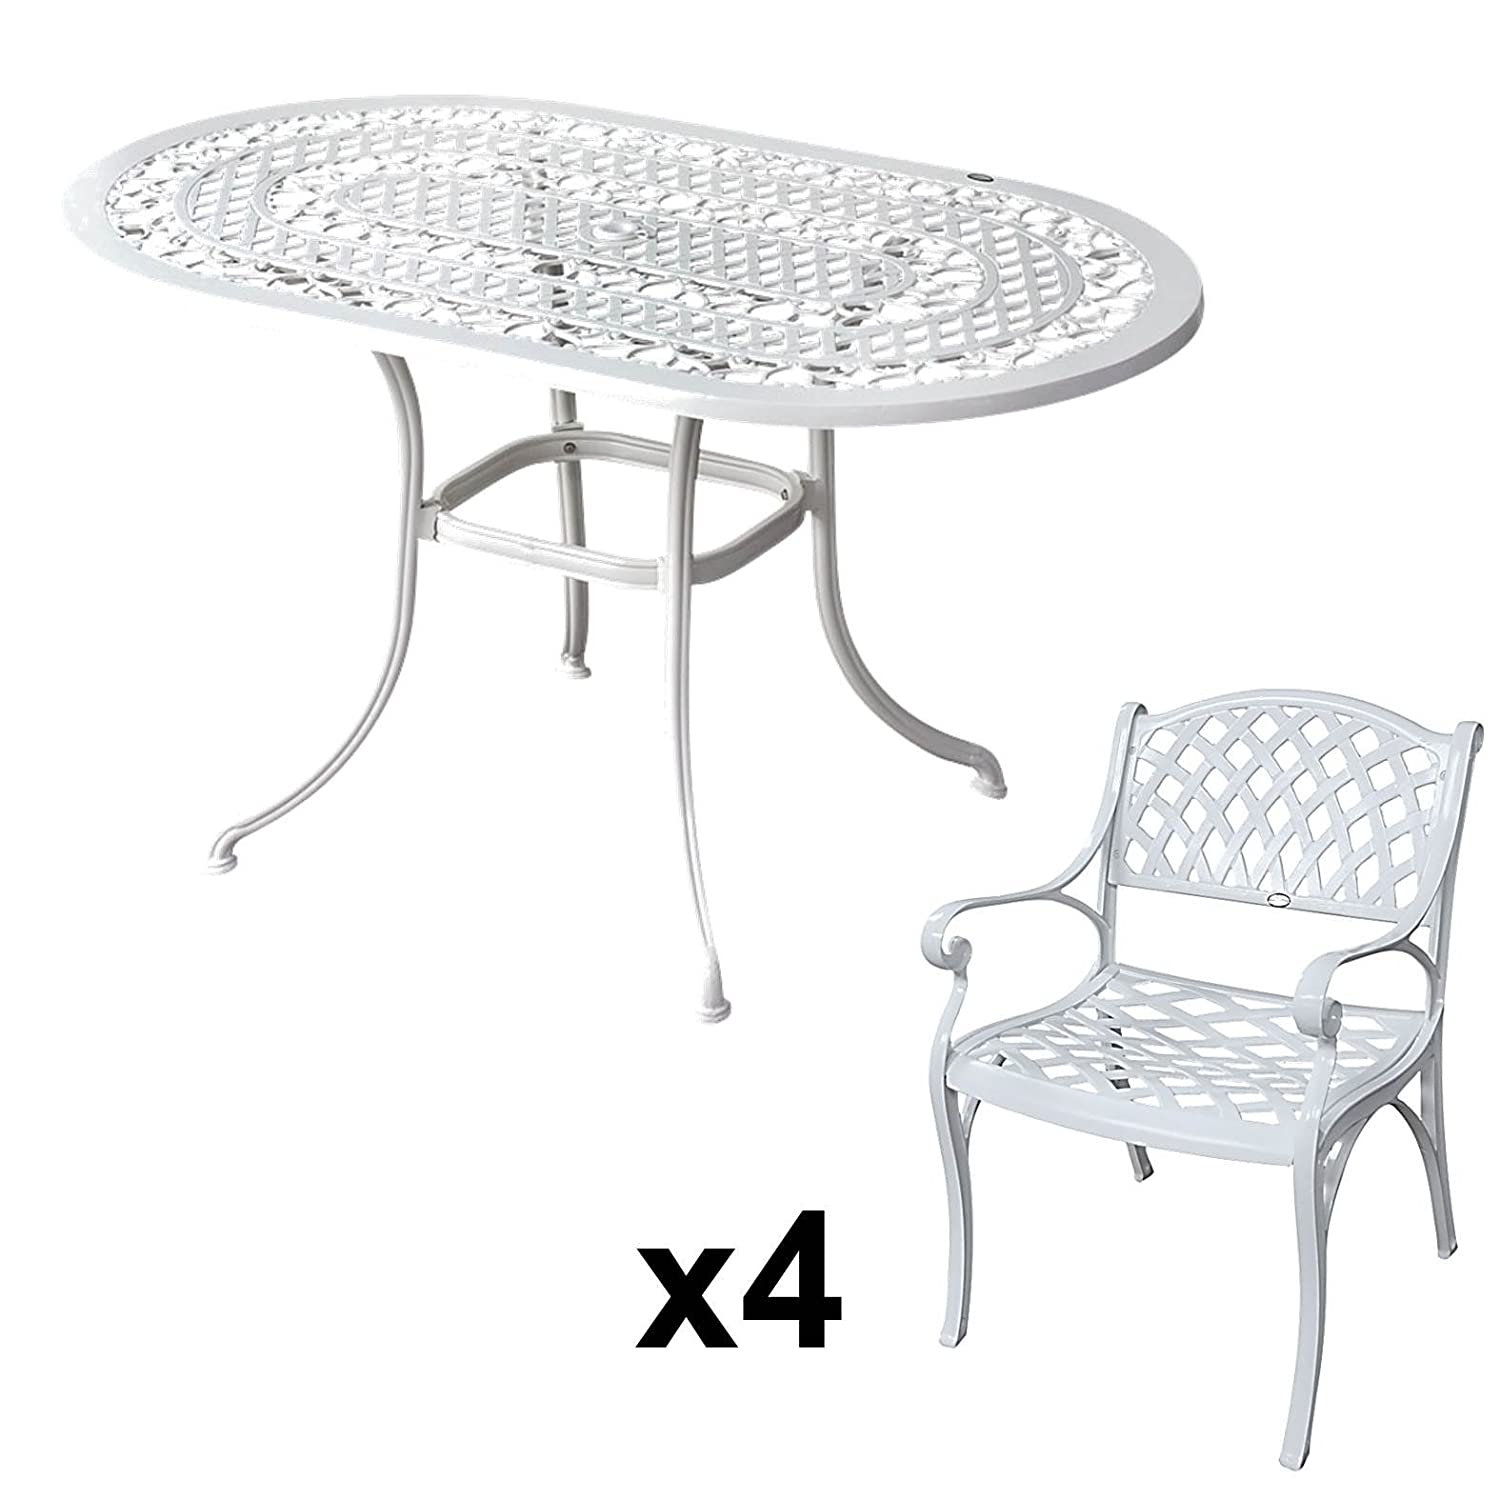 lazy susan elise 136 x 81 cm ovaler gartentisch mit 4 st hlen gartenm bel set aus metall. Black Bedroom Furniture Sets. Home Design Ideas